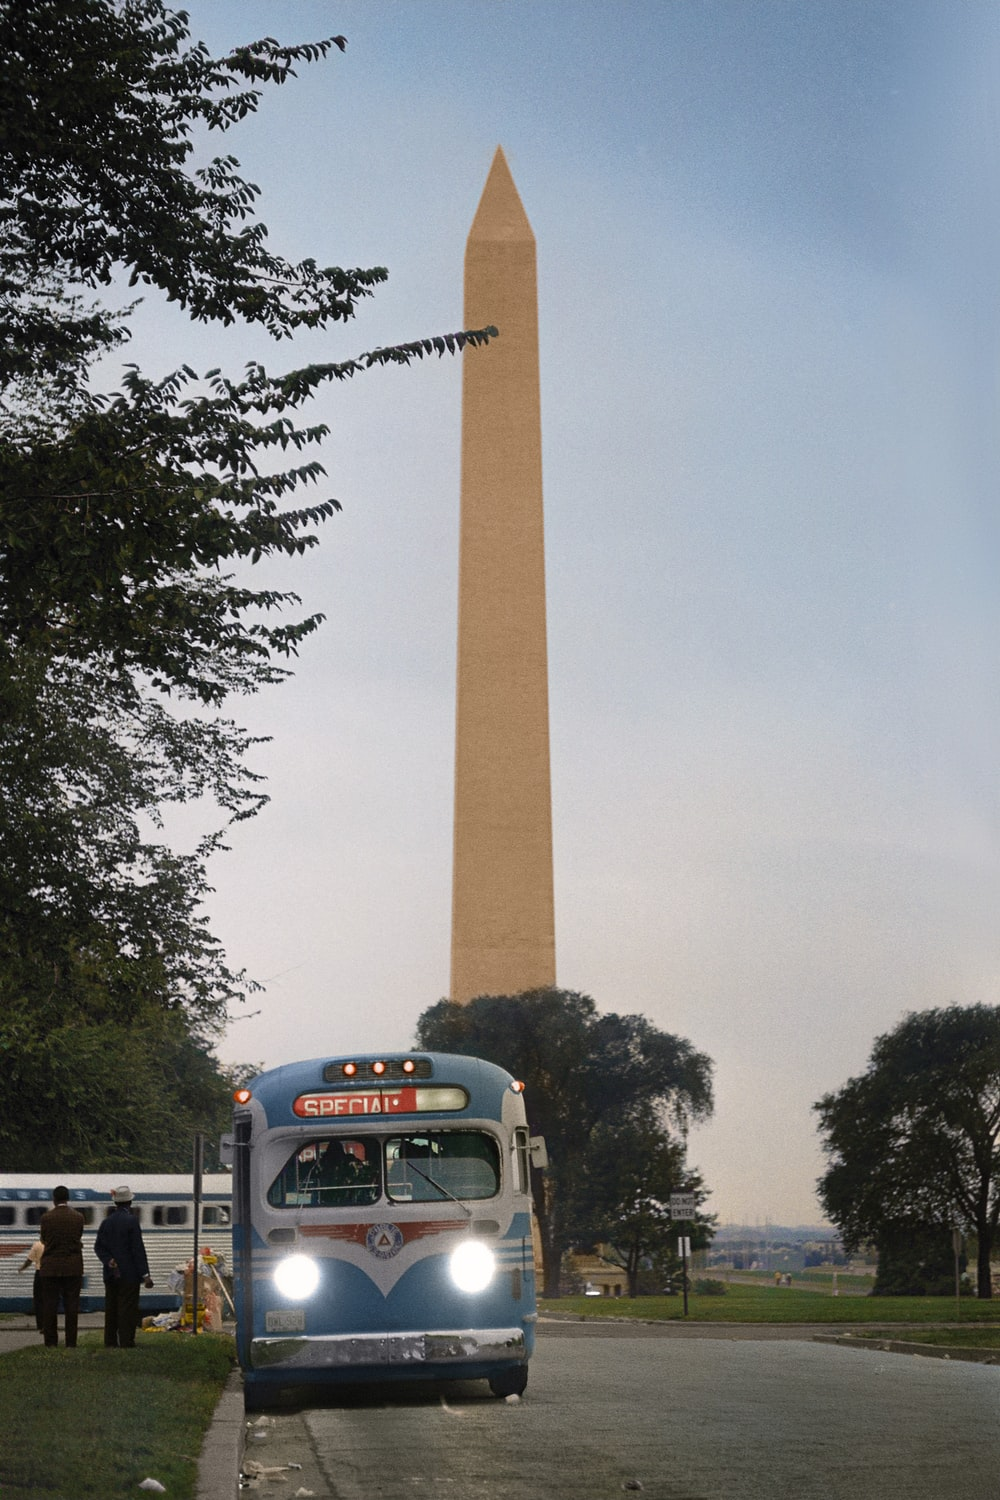 Buses departing in front of the Washington Monument after the Civil Rights March on Washington, D.C.